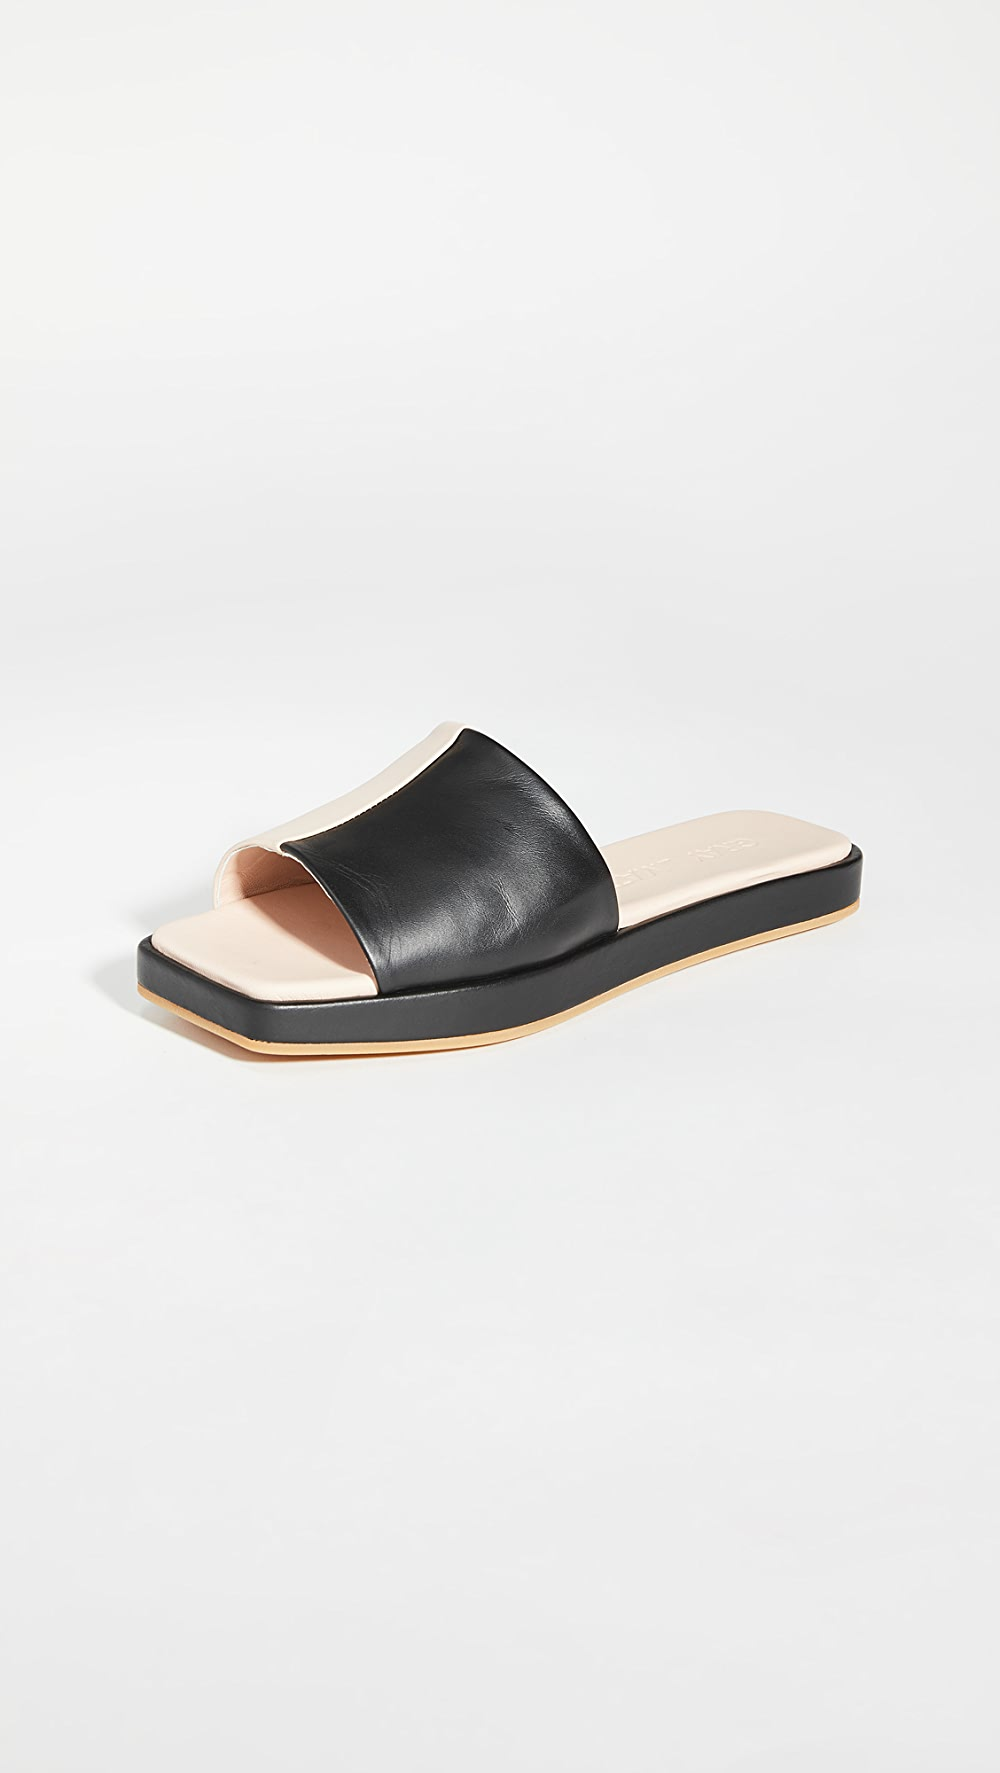 Radient Gray Matters - Classic Flatform Slides Fashionable(In) Style;